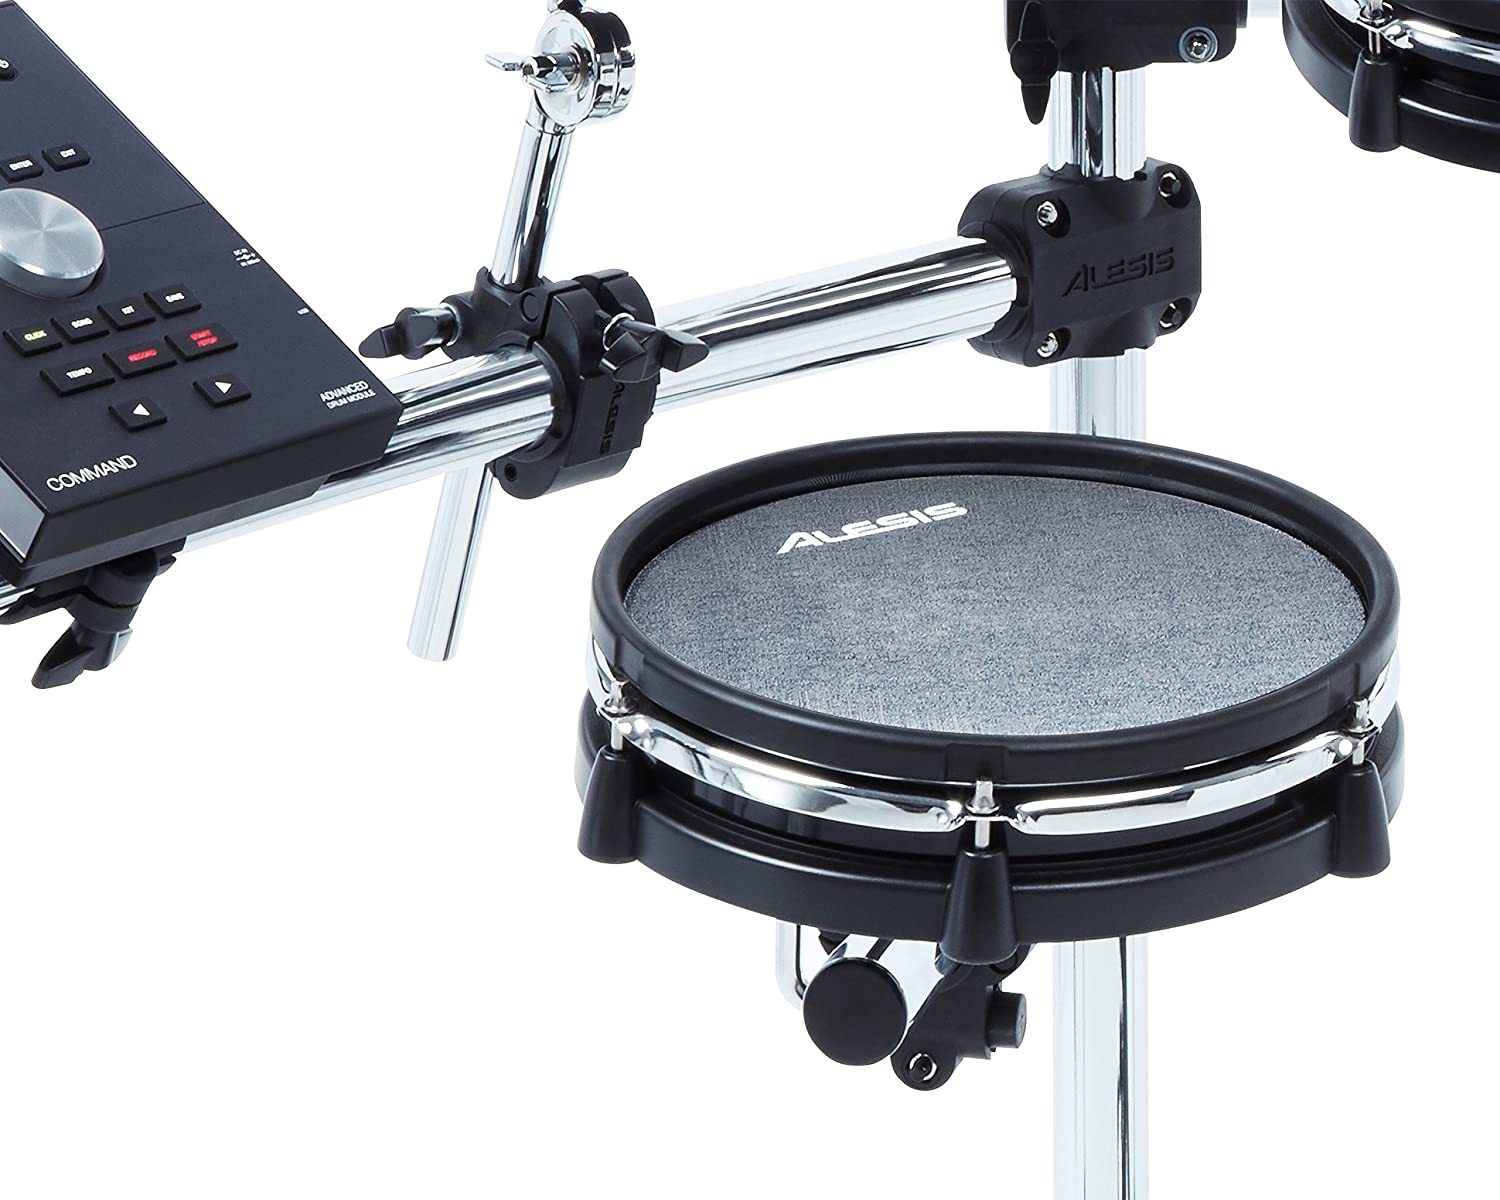 Alesis Command kit the Pads